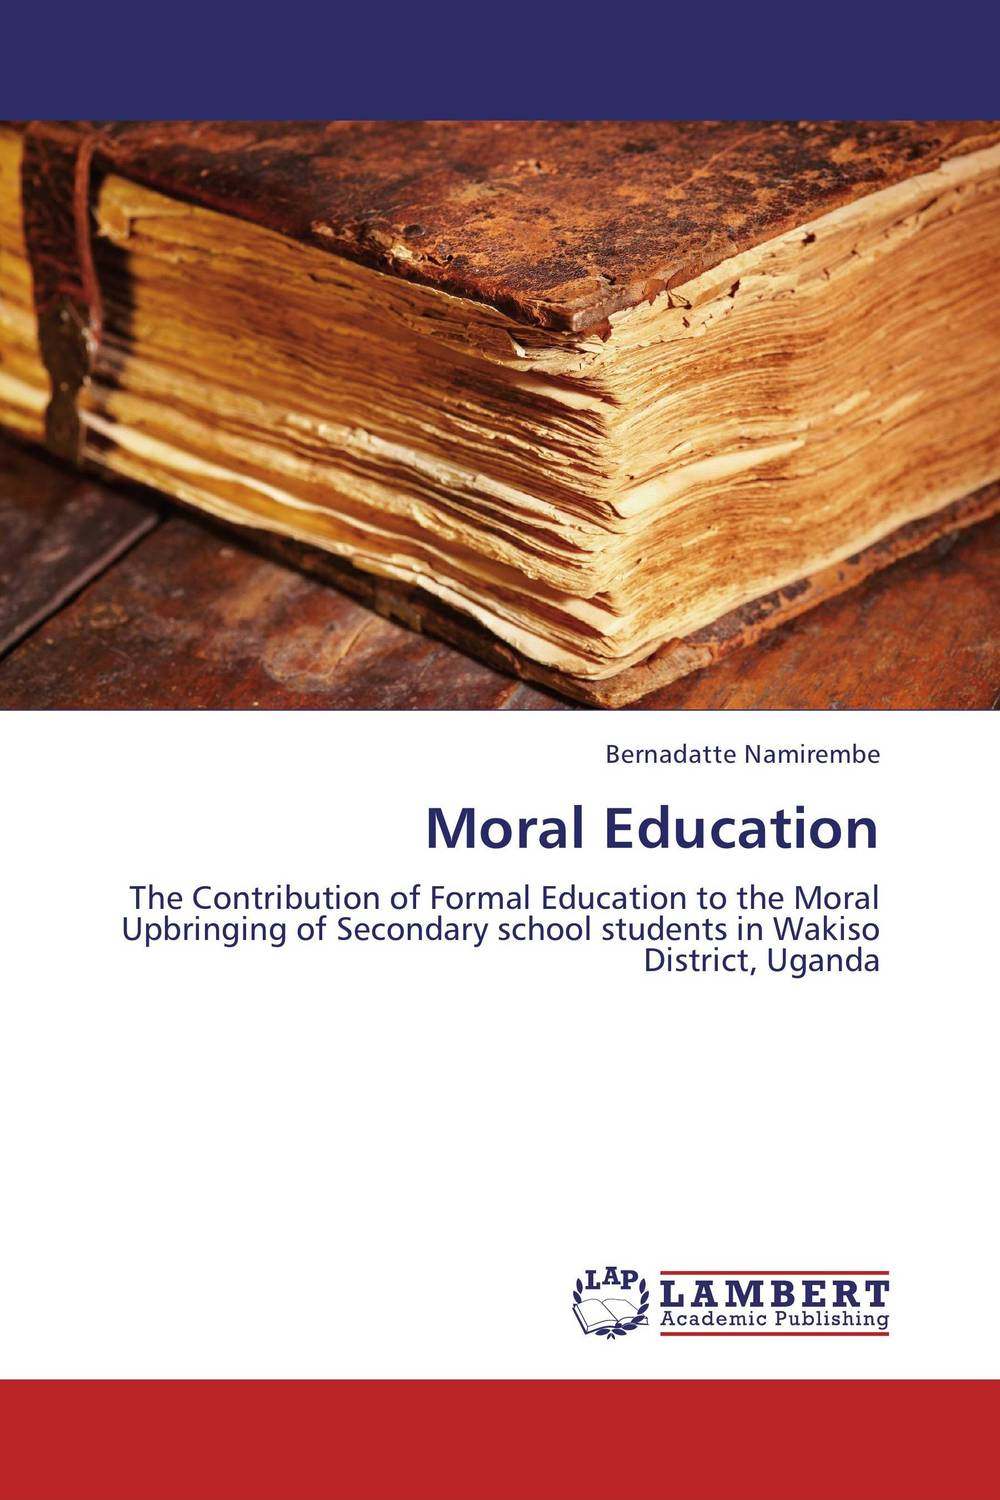 Moral Education role of school leadership in promoting moral integrity among students